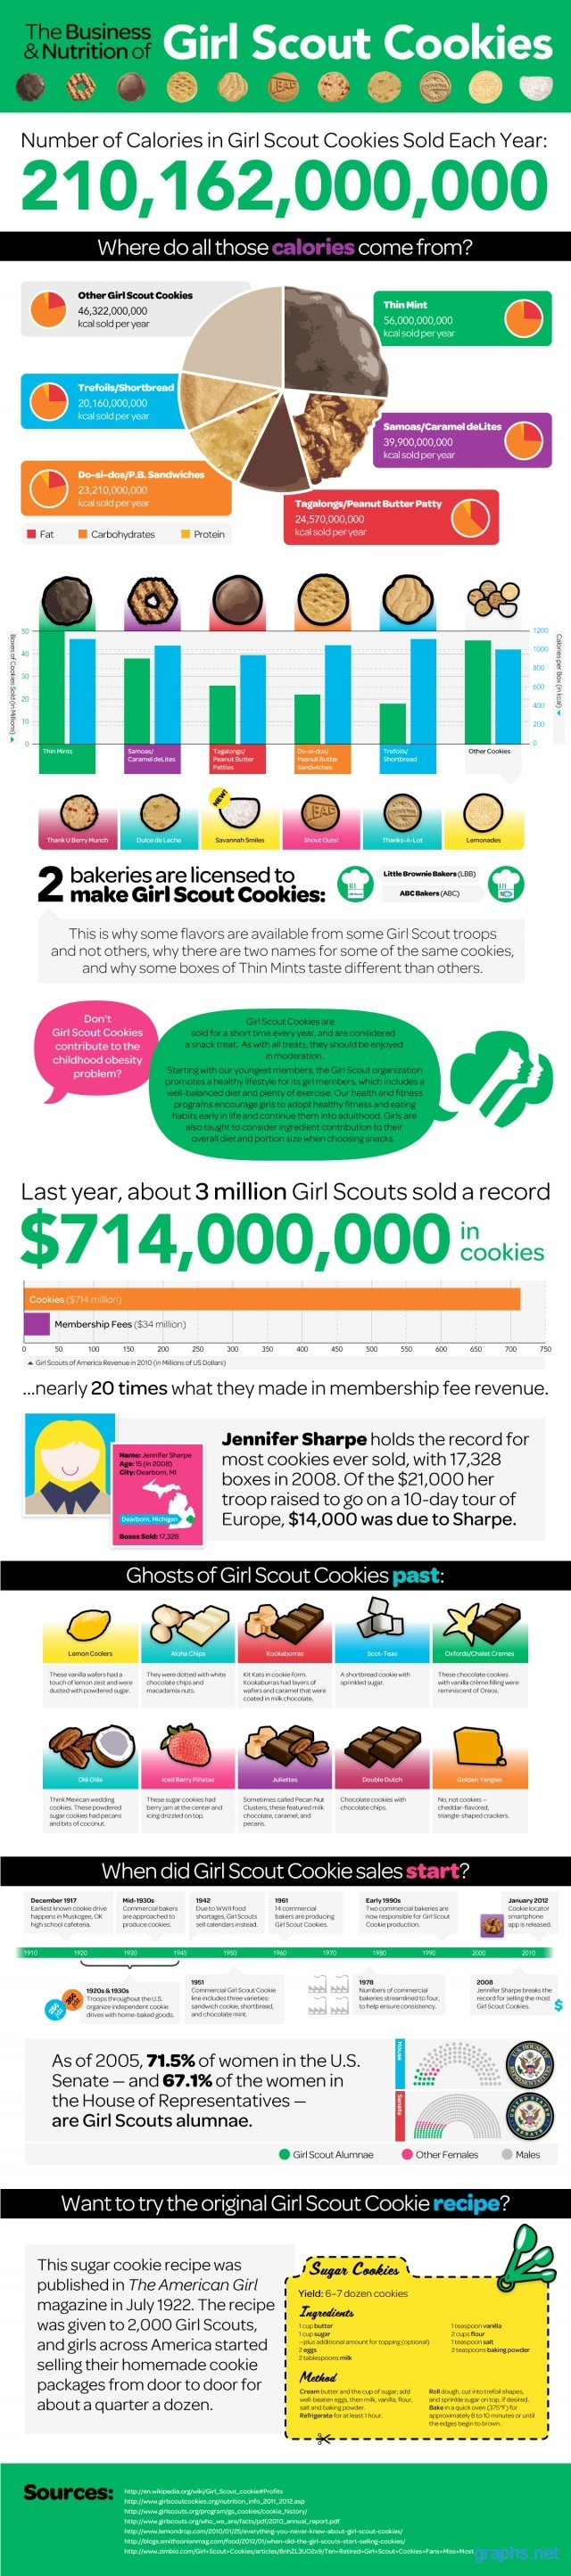 girl scout cookies facts